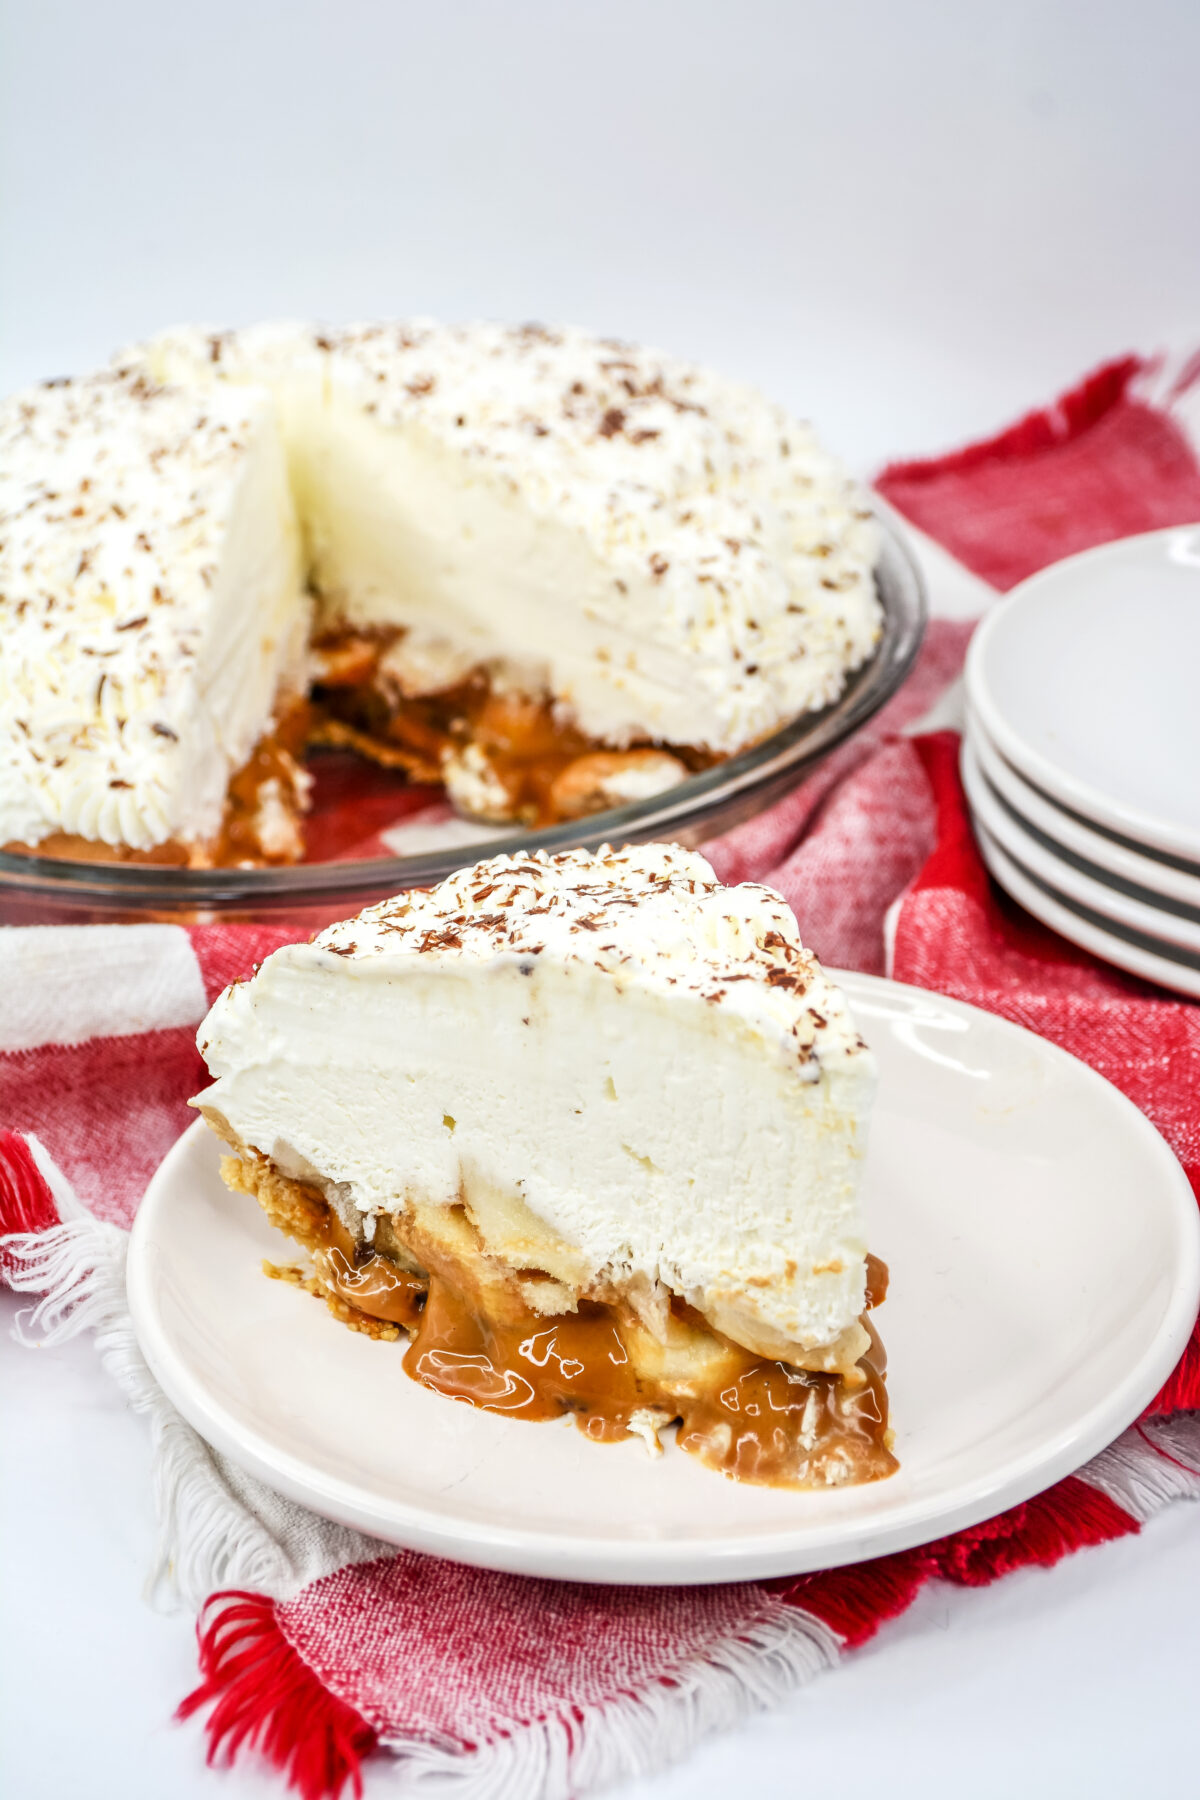 A classic English dessert, this banoffee pie recipe is easy to make and combines the taste of toffee, bananas, and cream into a tasty treat.